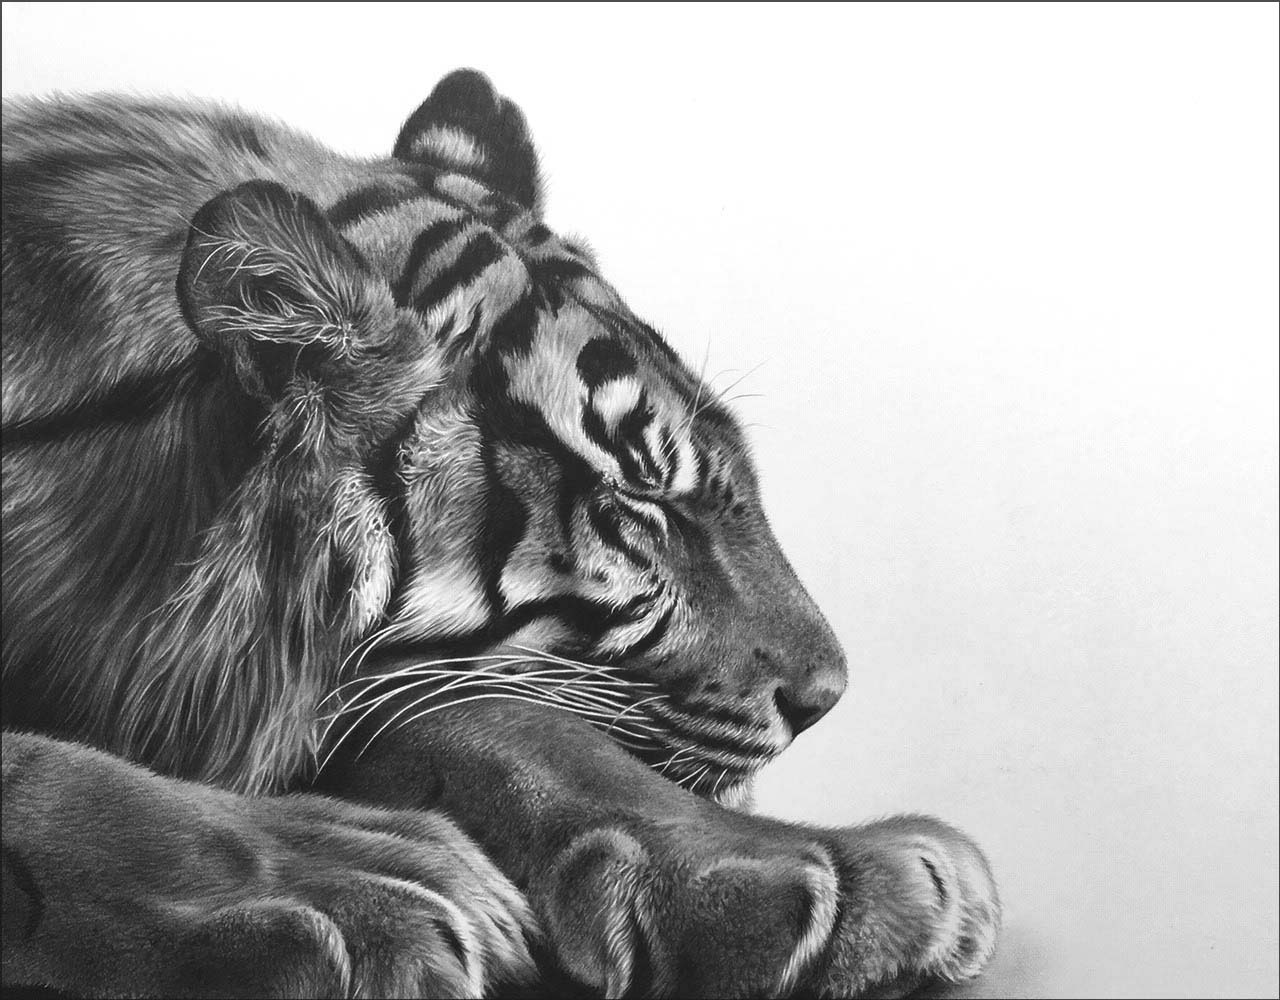 Sleeping tiger art drawing in pencil wildlife